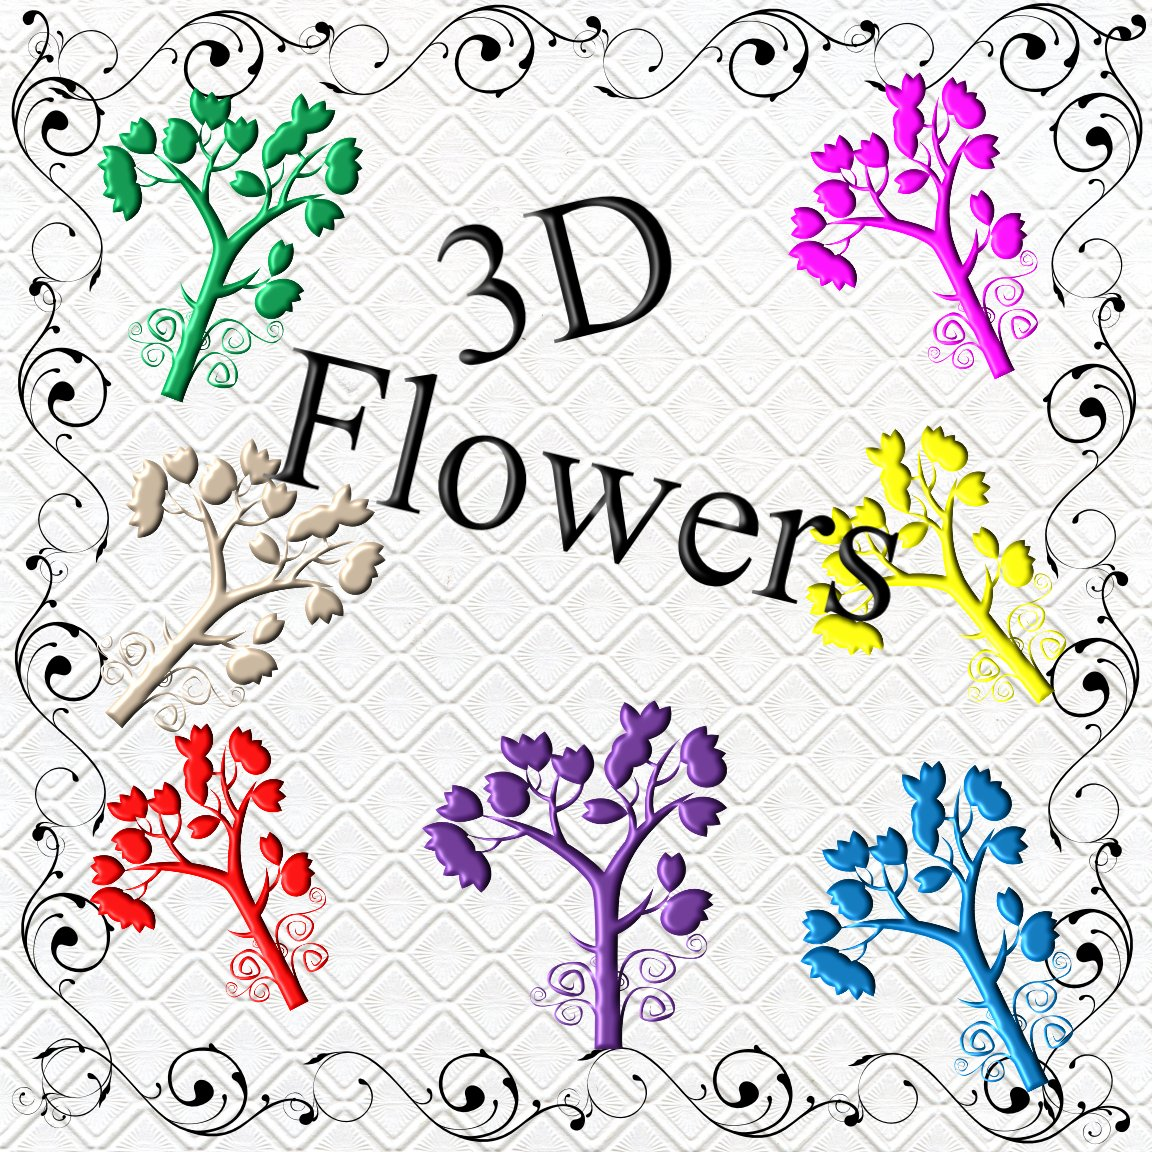 Color 3D Flowers201a-Digital ClipArt-Gift Tag-Scrapbook-banner-background-gift card.